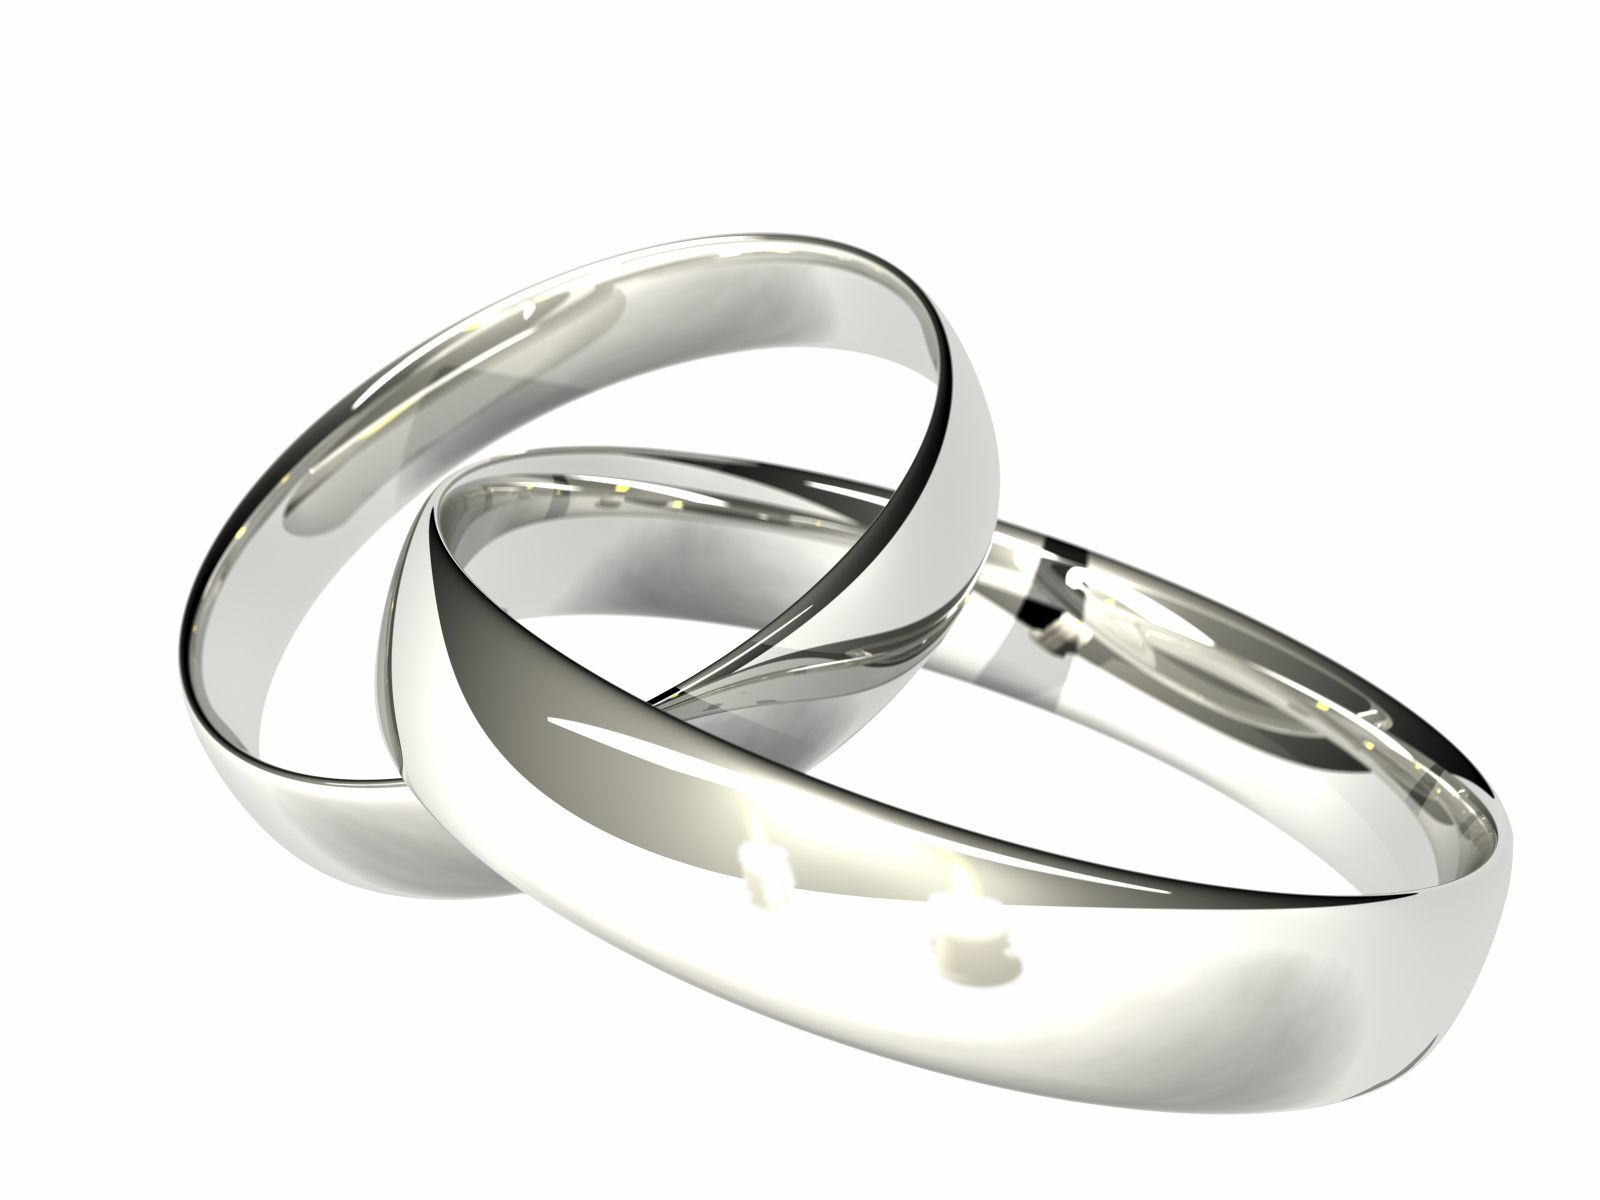 wedding rings marriage rings wedding a pair of elegant - Black And White Wedding Rings